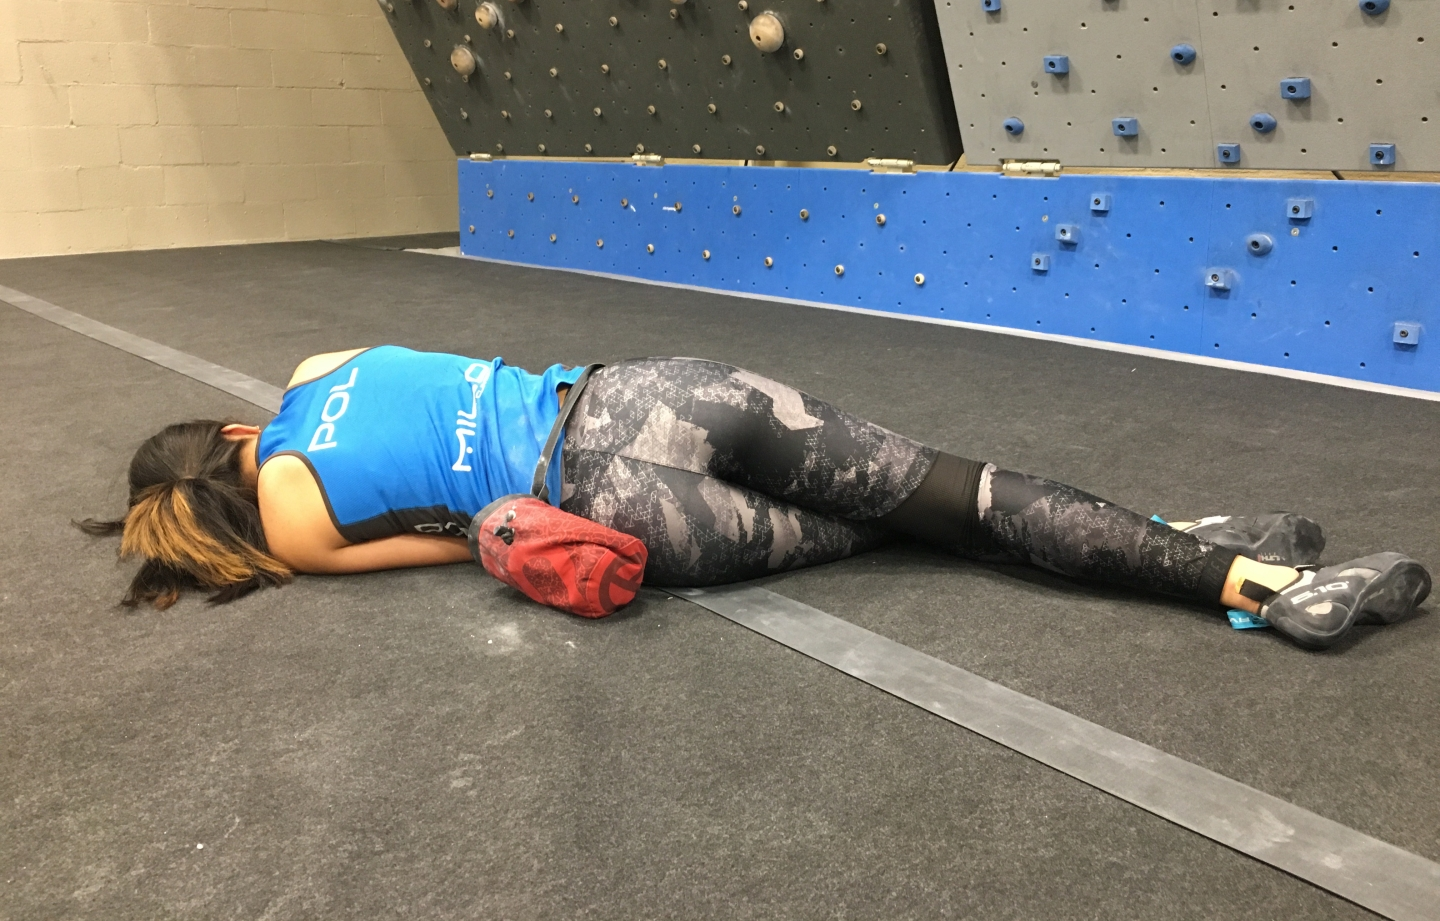 Exhausted climber